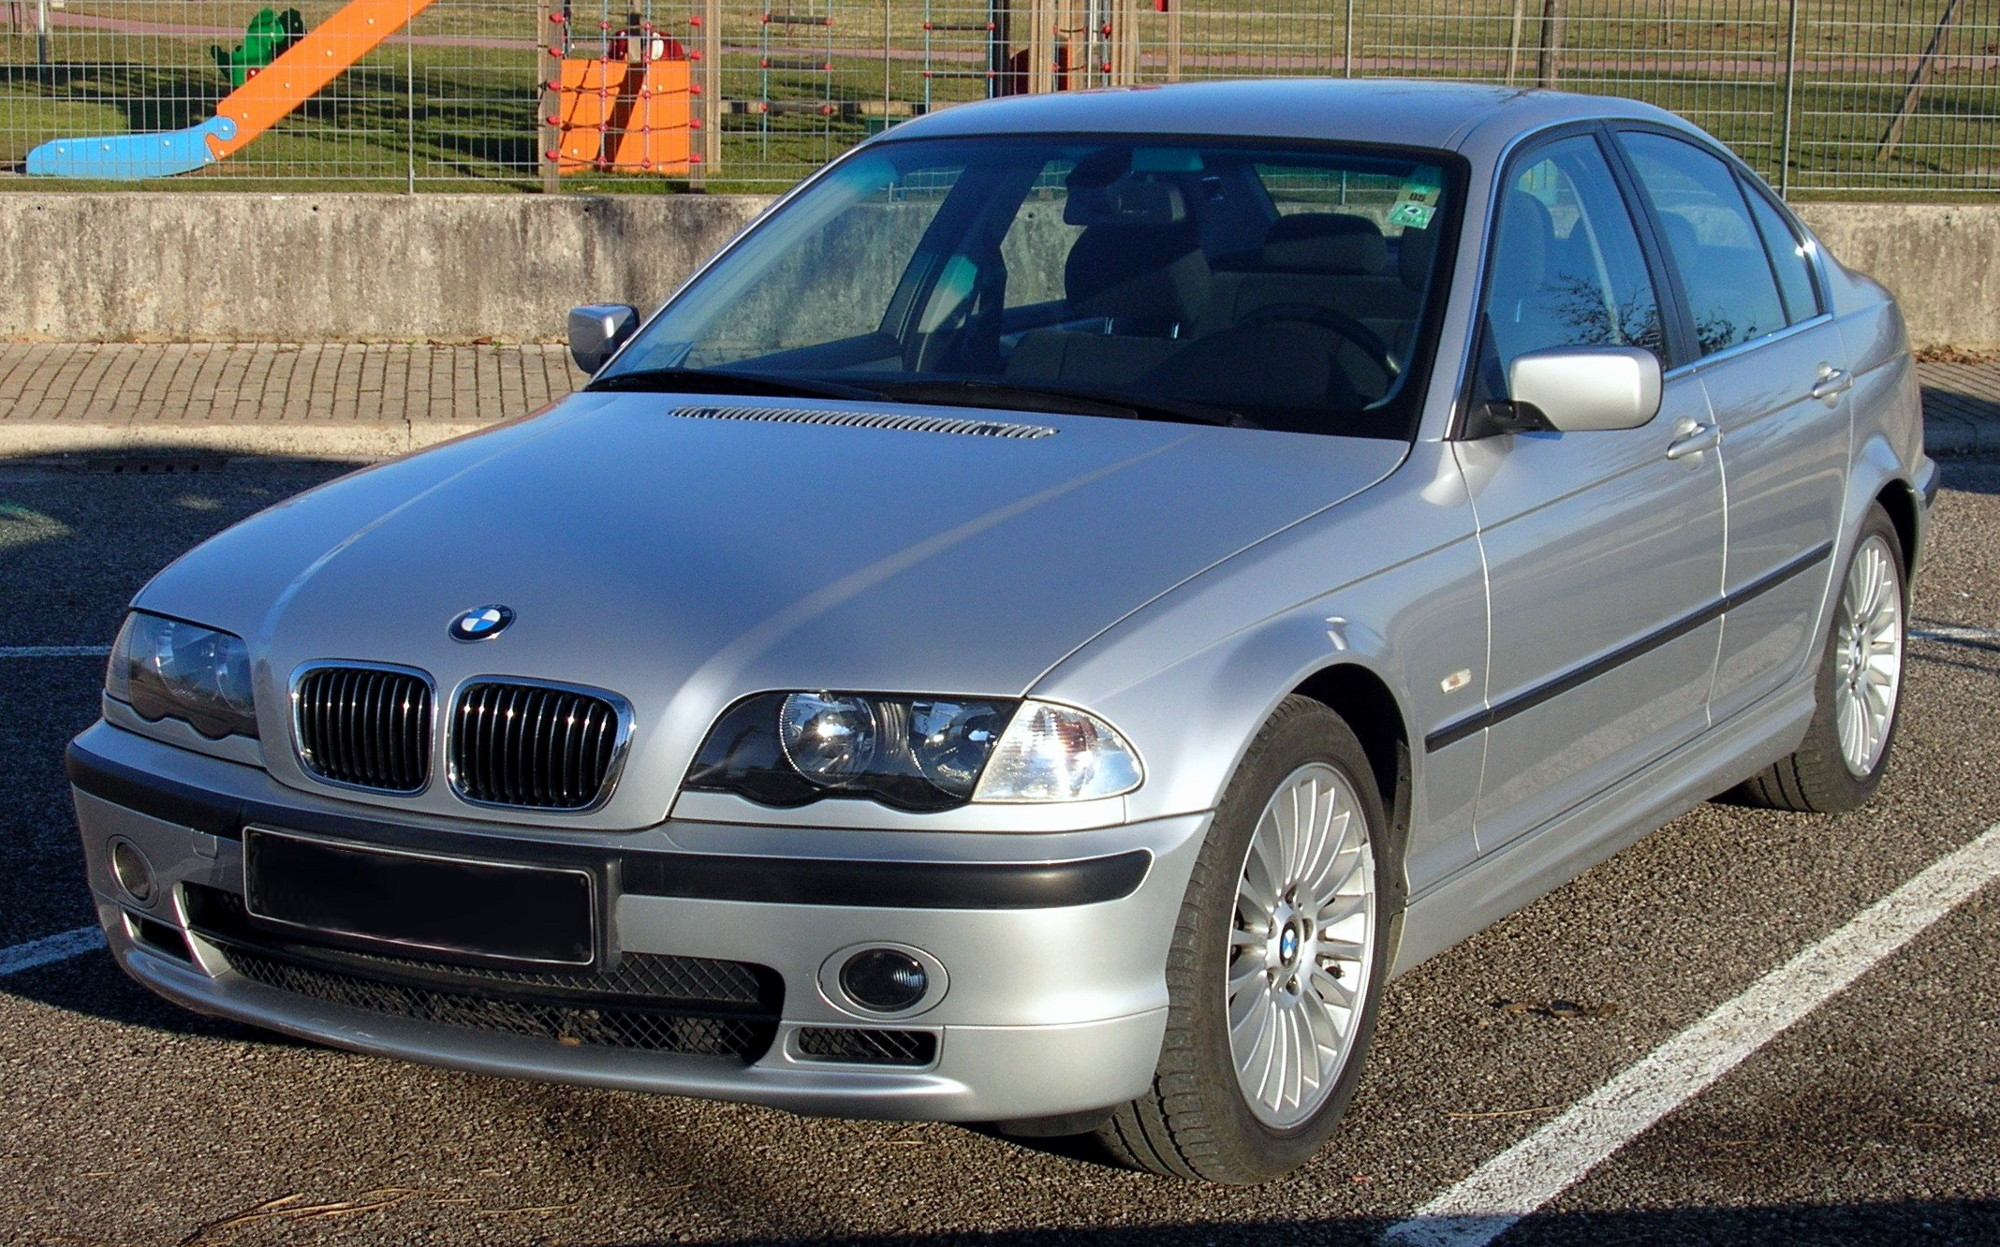 File Bmw 330d E46 Sedan M Jpg Wikimedia Commons